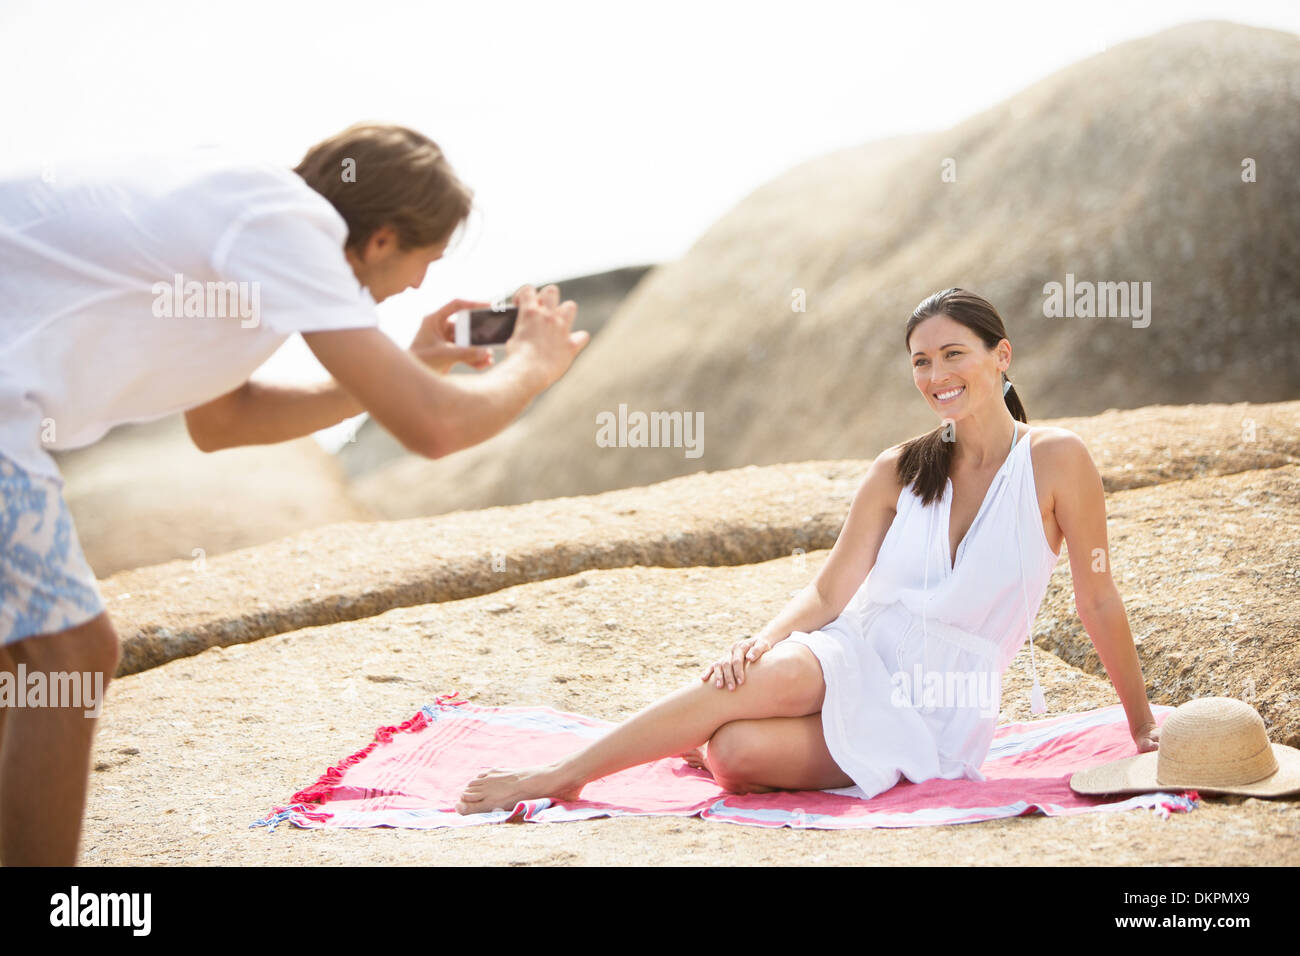 Man taking picture of girlfriend on beach - Stock Image